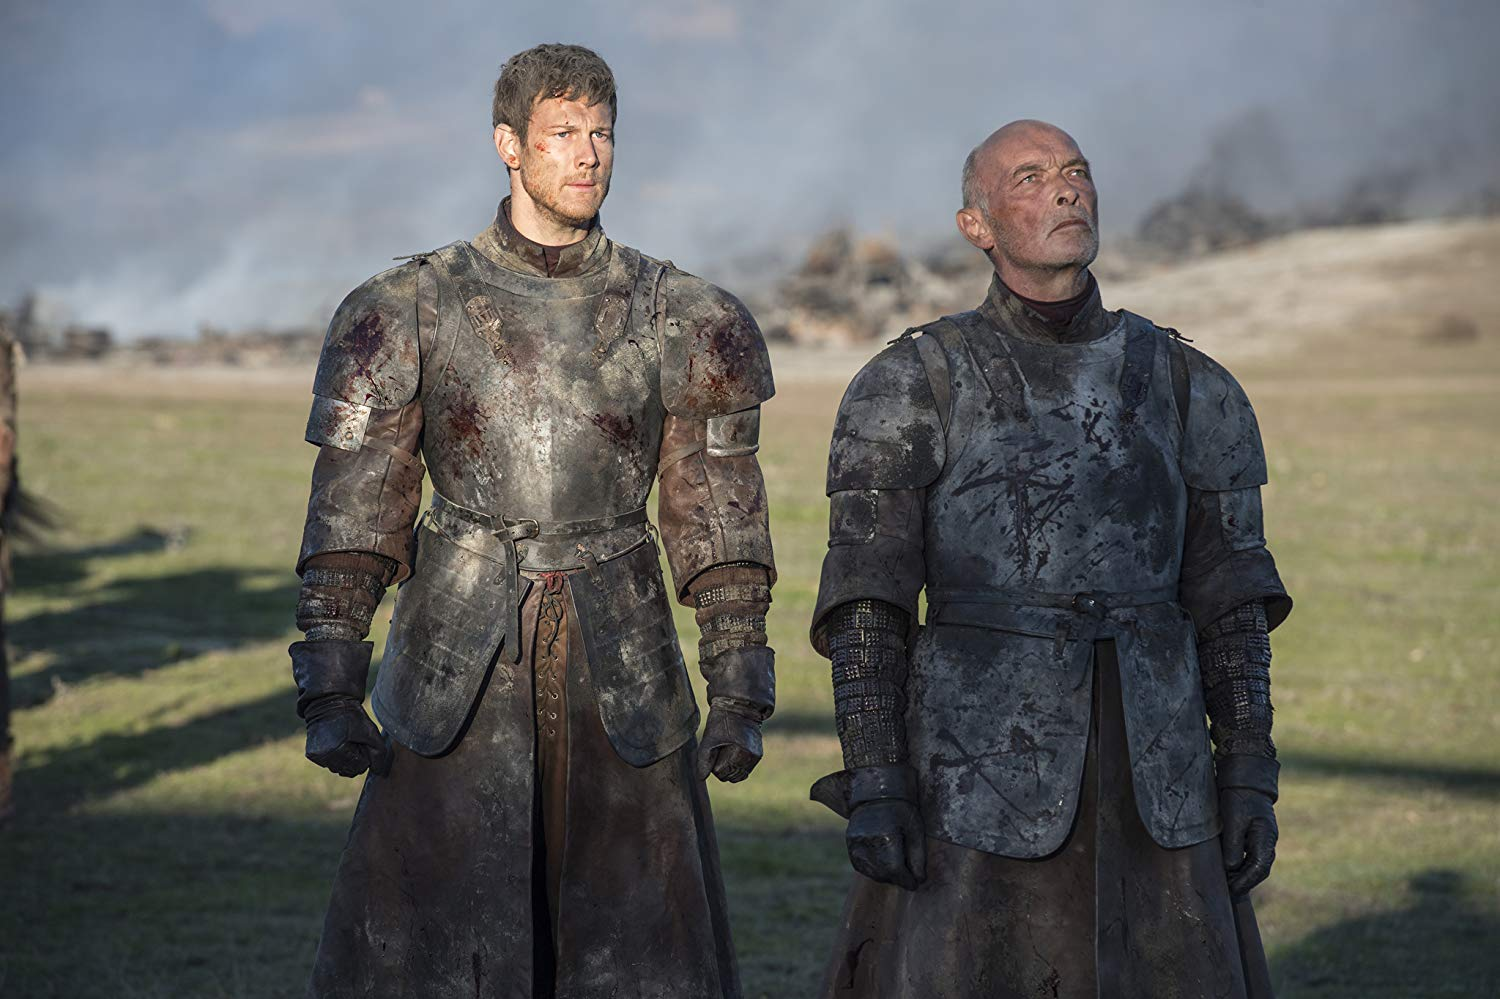 James Faulkner and Tom Hopper in Game of Thrones (2011) Image Courtesy: IMDB